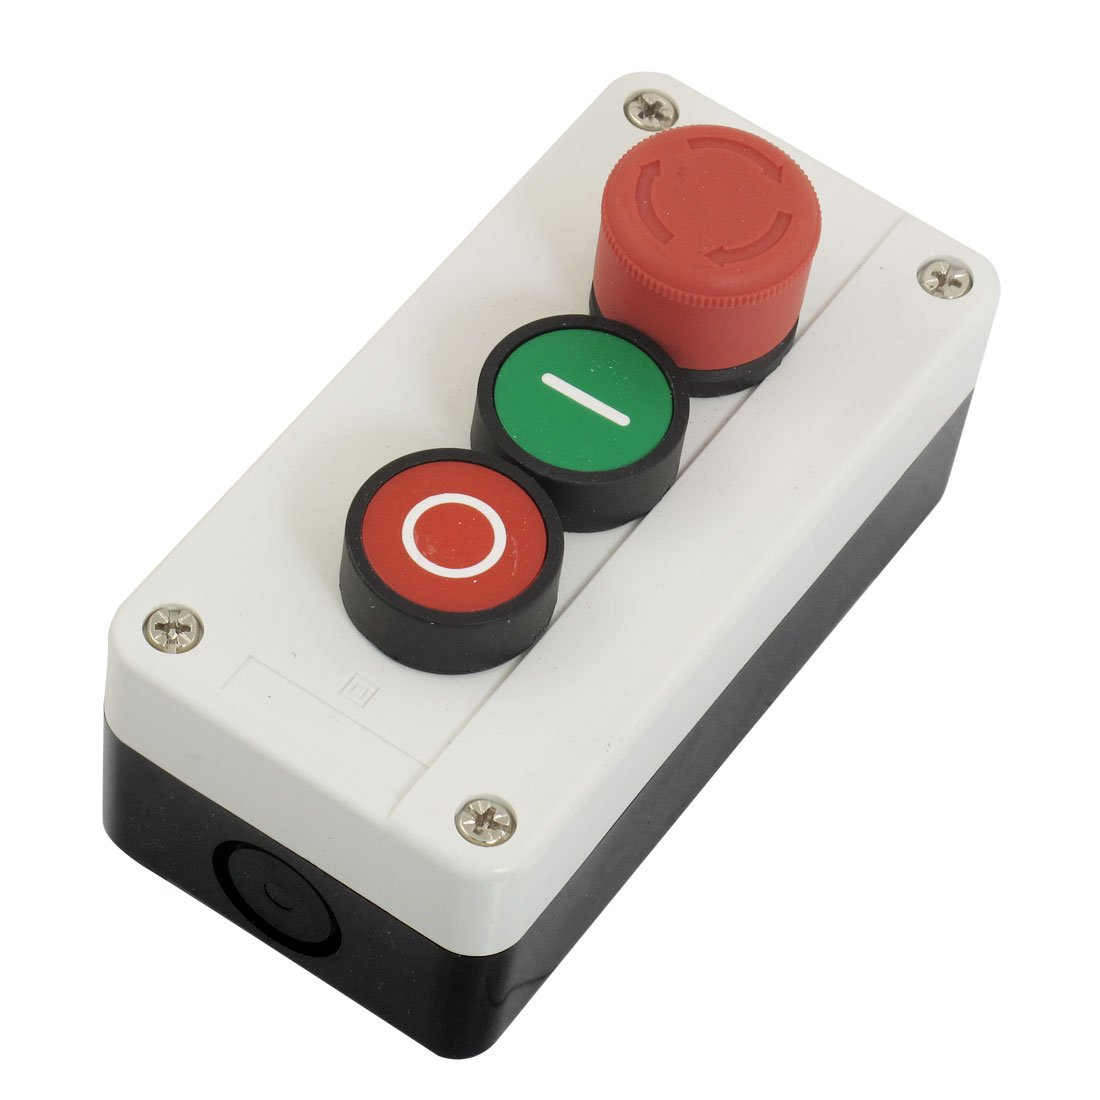 NC Emergency Stop NO Red Green Momentary Push Button Switch Station 600V 10A ignition momentary press push button switch protective cover ycz3 c emergency stop & start 5 pin on off red sign 10a 125v